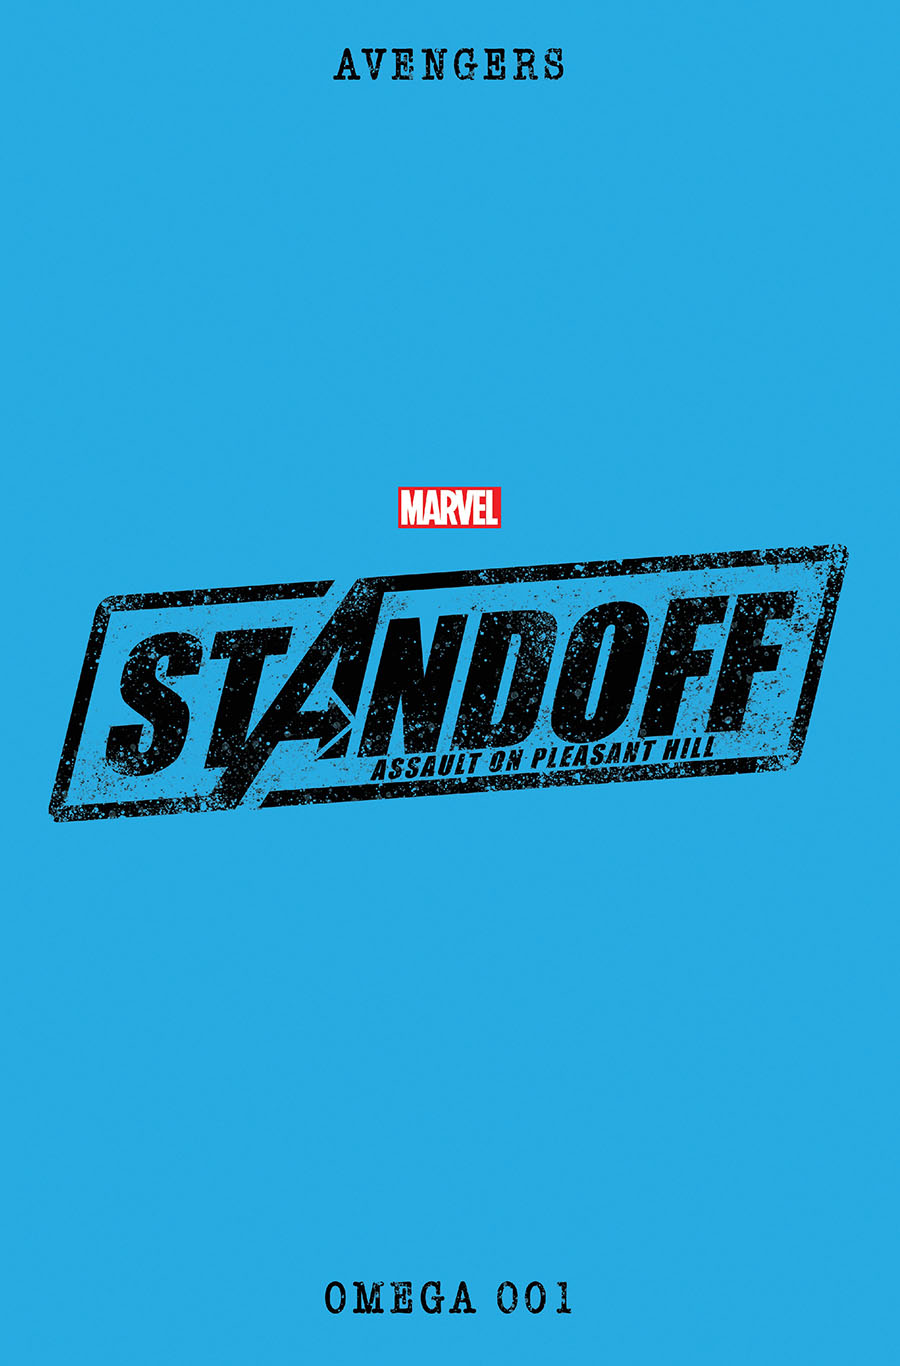 Avengers Standoff: Assault on Pleasant Hill Omega